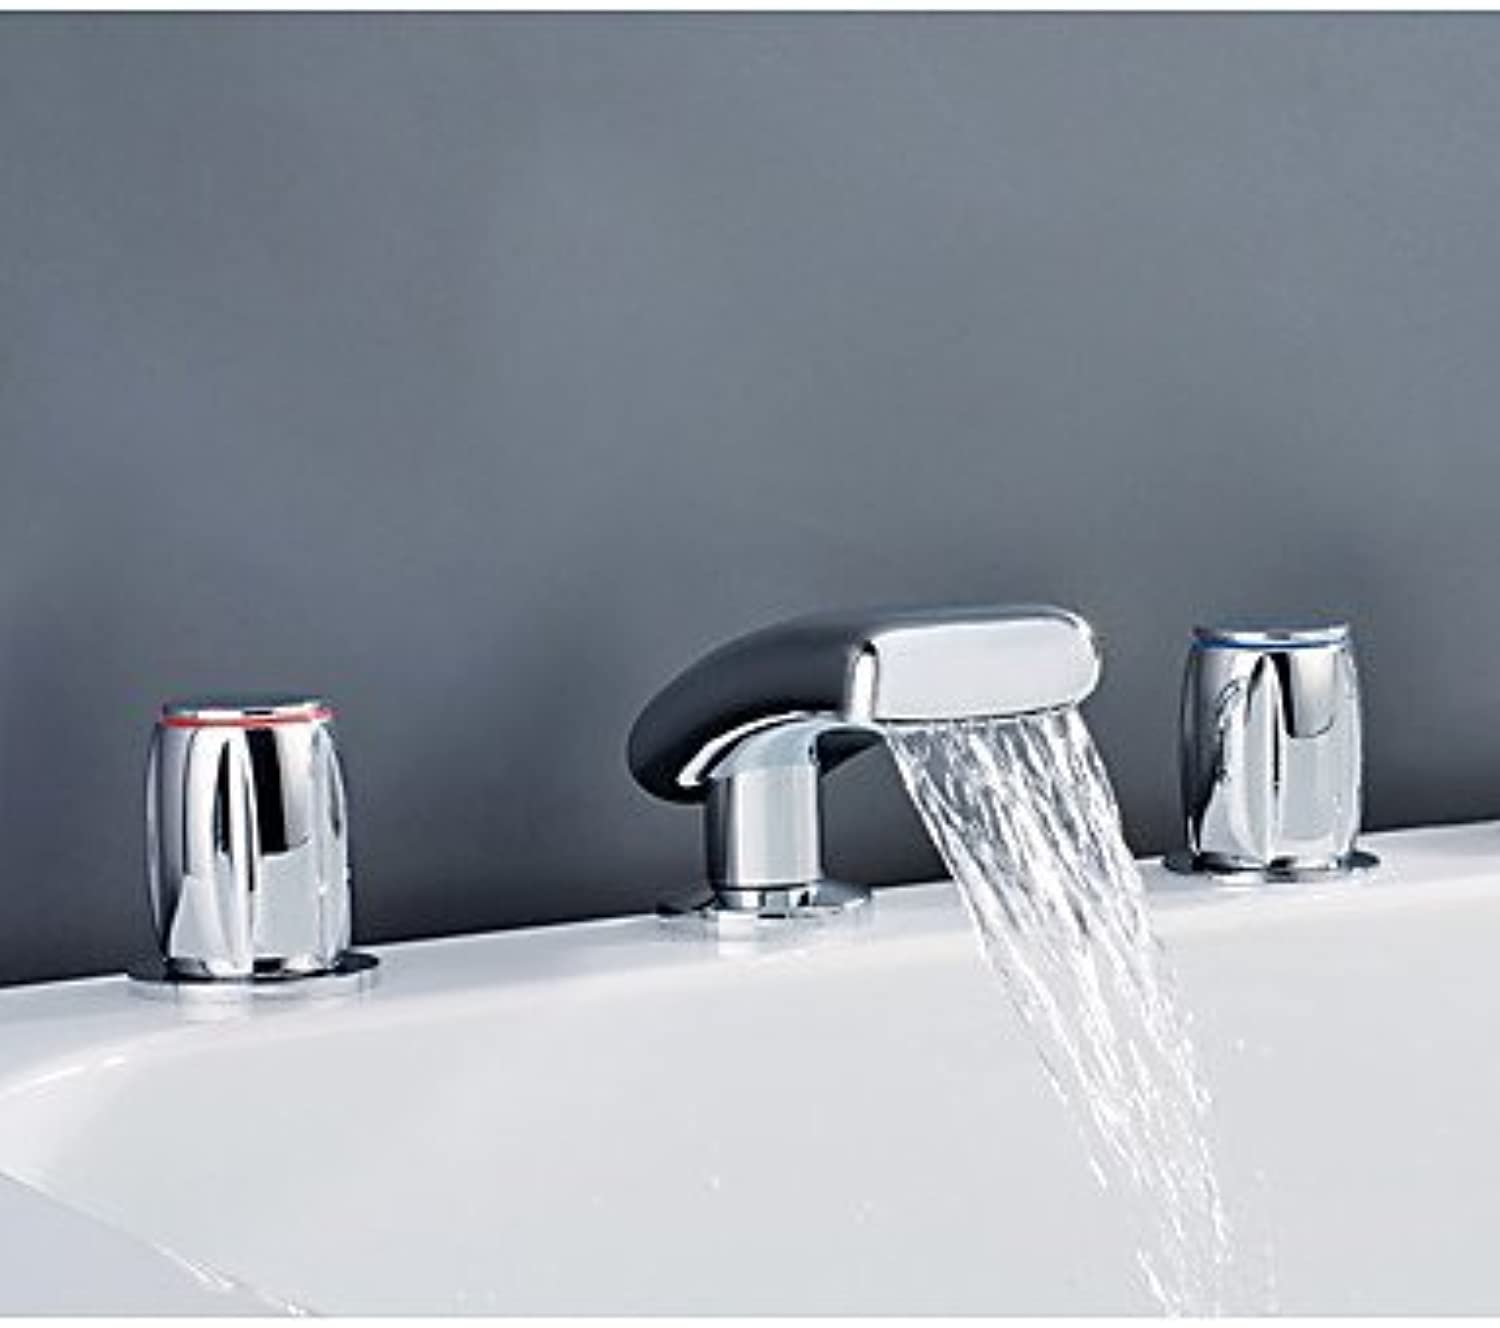 YI KUI Sink Faucet Contemporary Rustic Art Deco Retro 3 Hole Faucet Waterfall with Ceramic alve Two Handles Three Holes for Chrome,